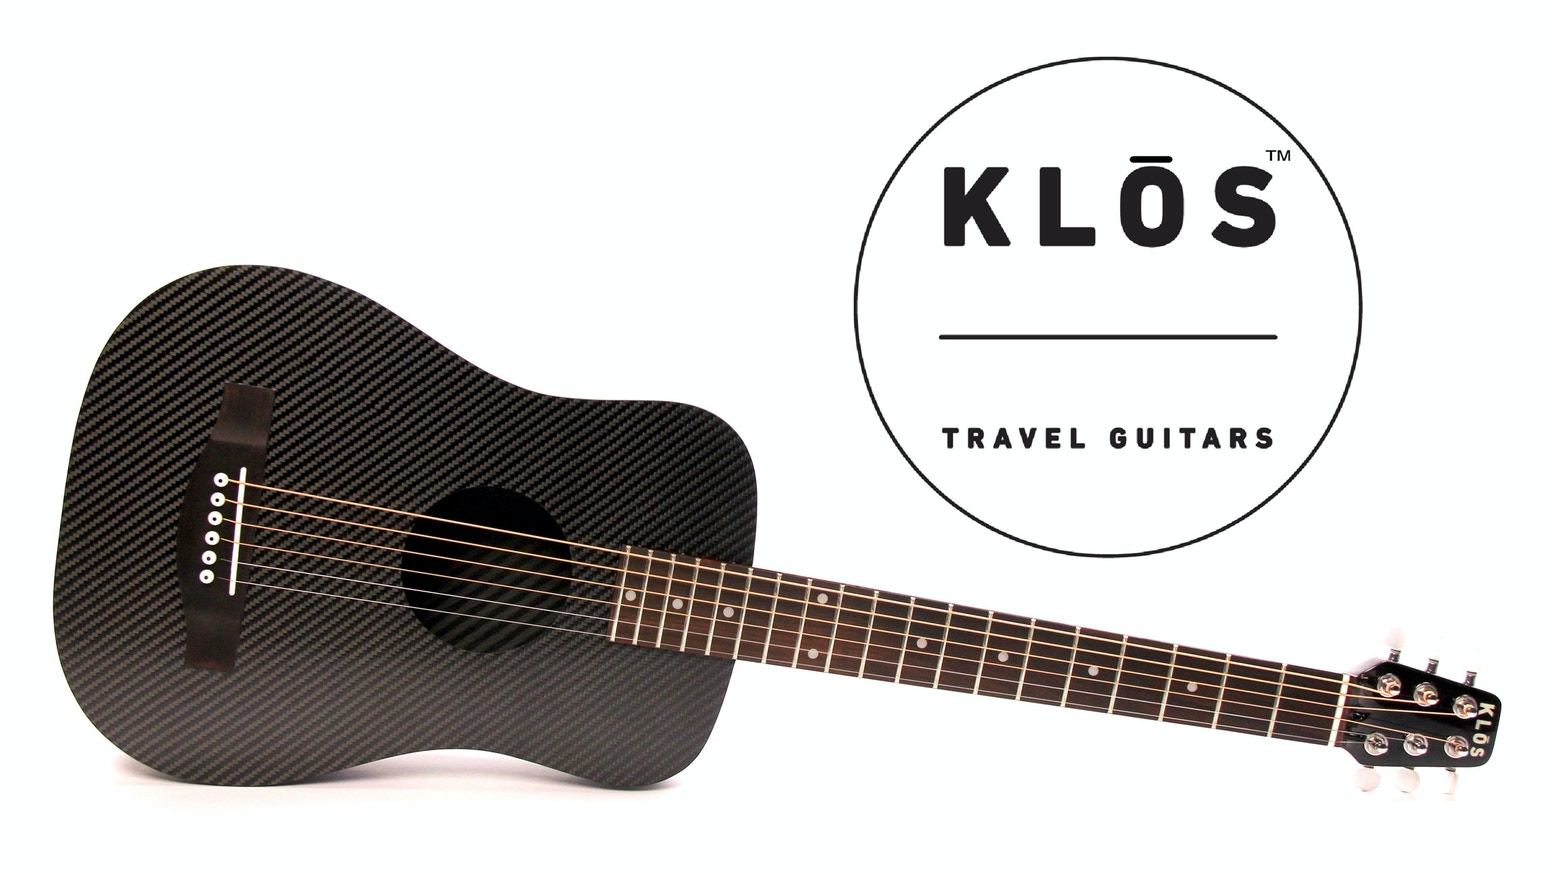 A new and improved KLOS Guitars design featuring a lighter, stronger, and better sounding carbon fiber travel guitar.